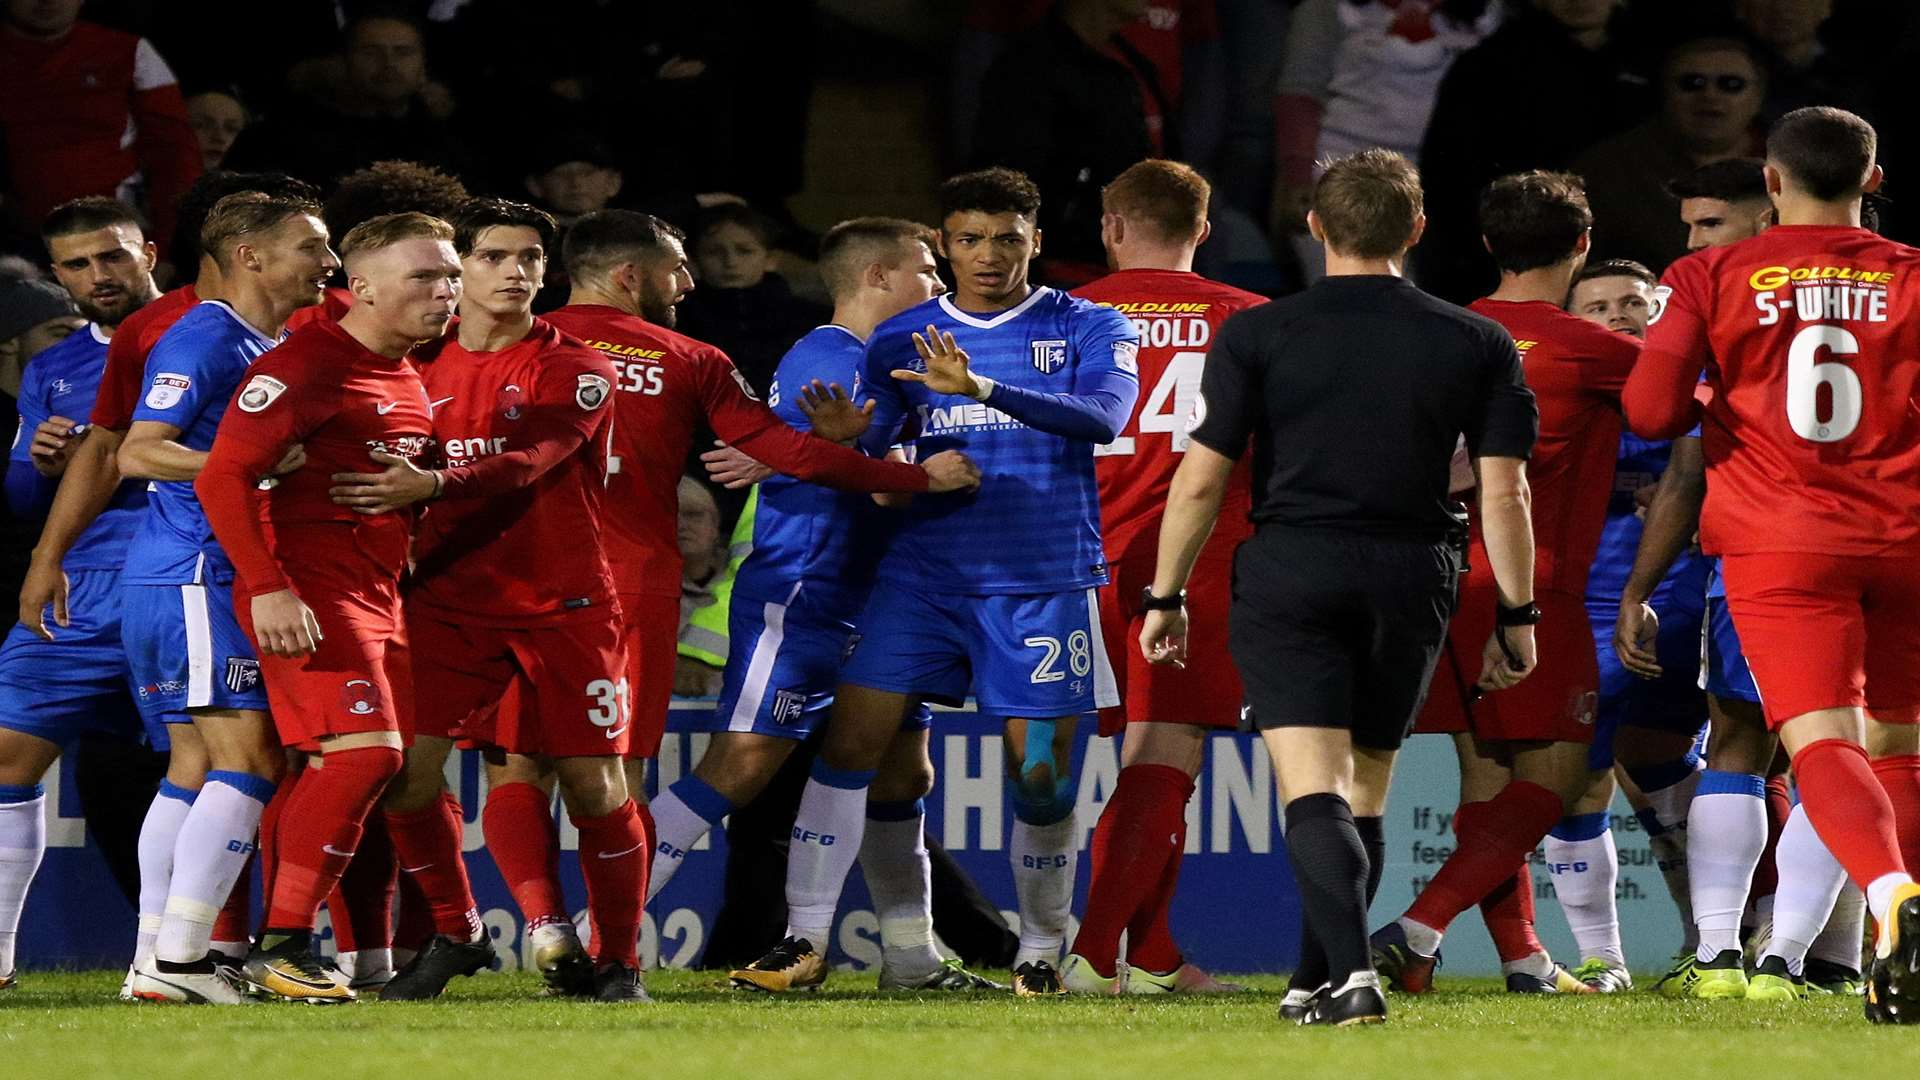 Tempers flare after some feisty challenges Picture: Andy Jones